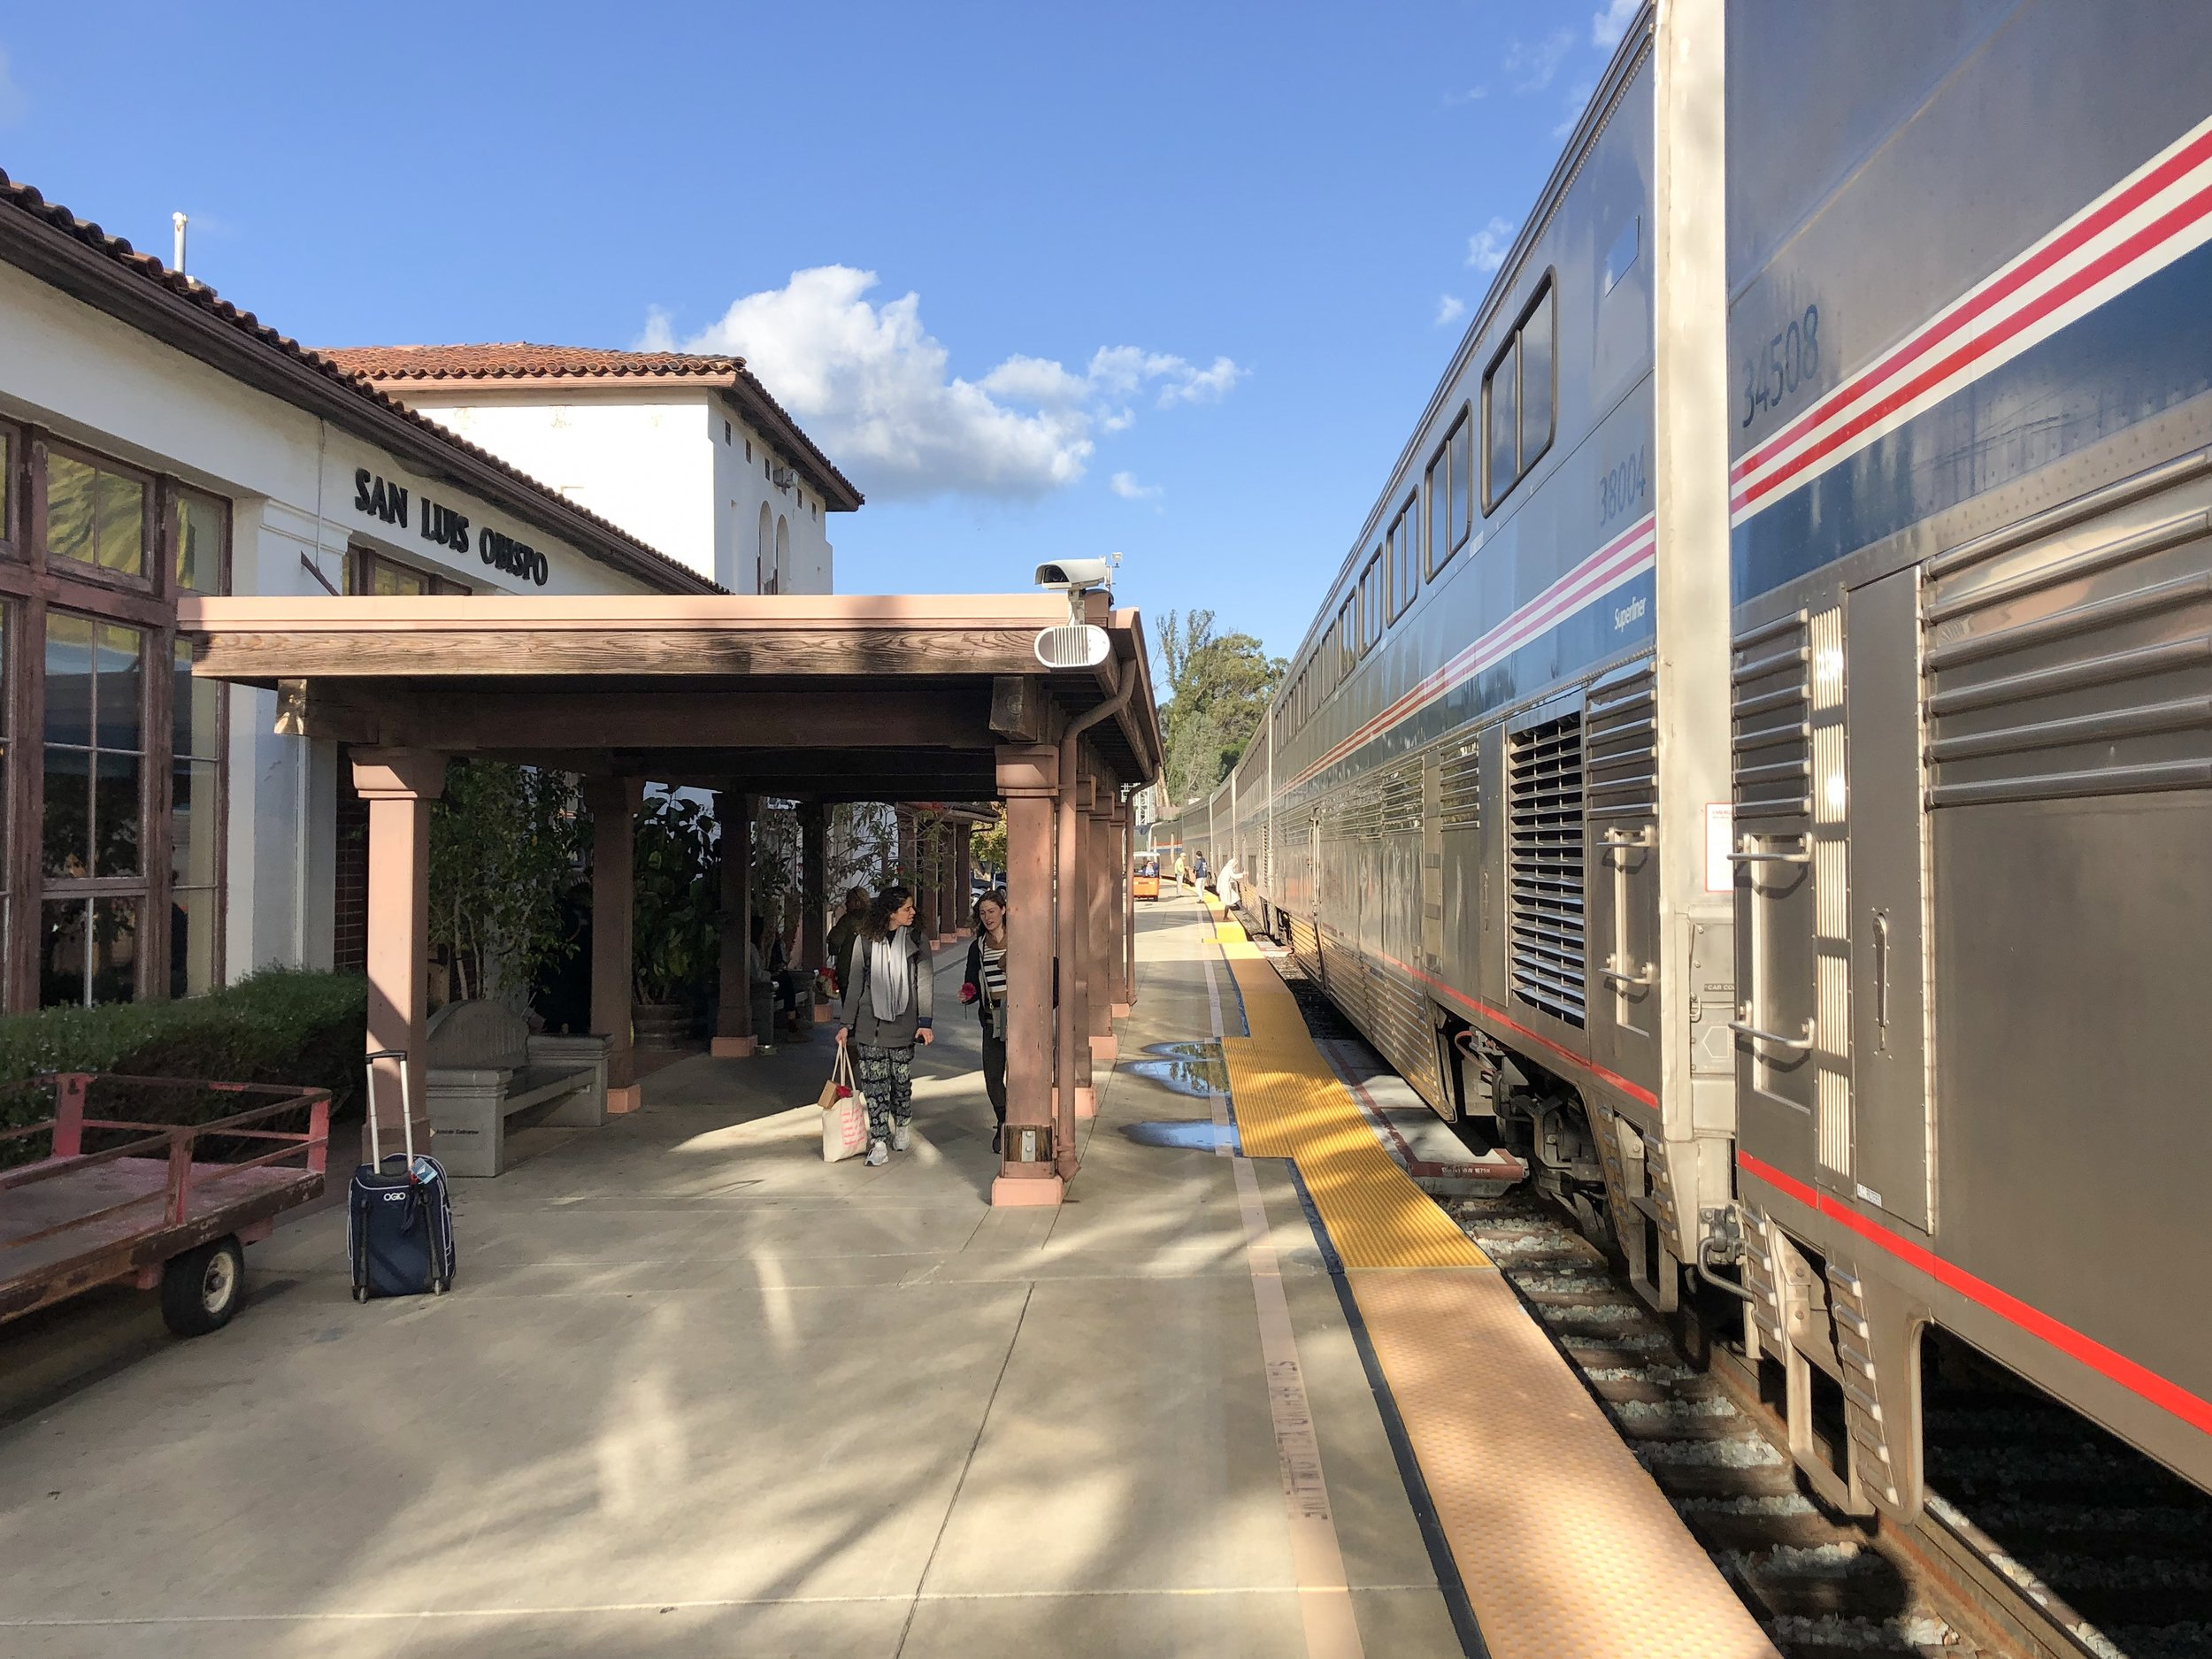 Small station at San Luis Obispo, California serves both long haul and city to city routes